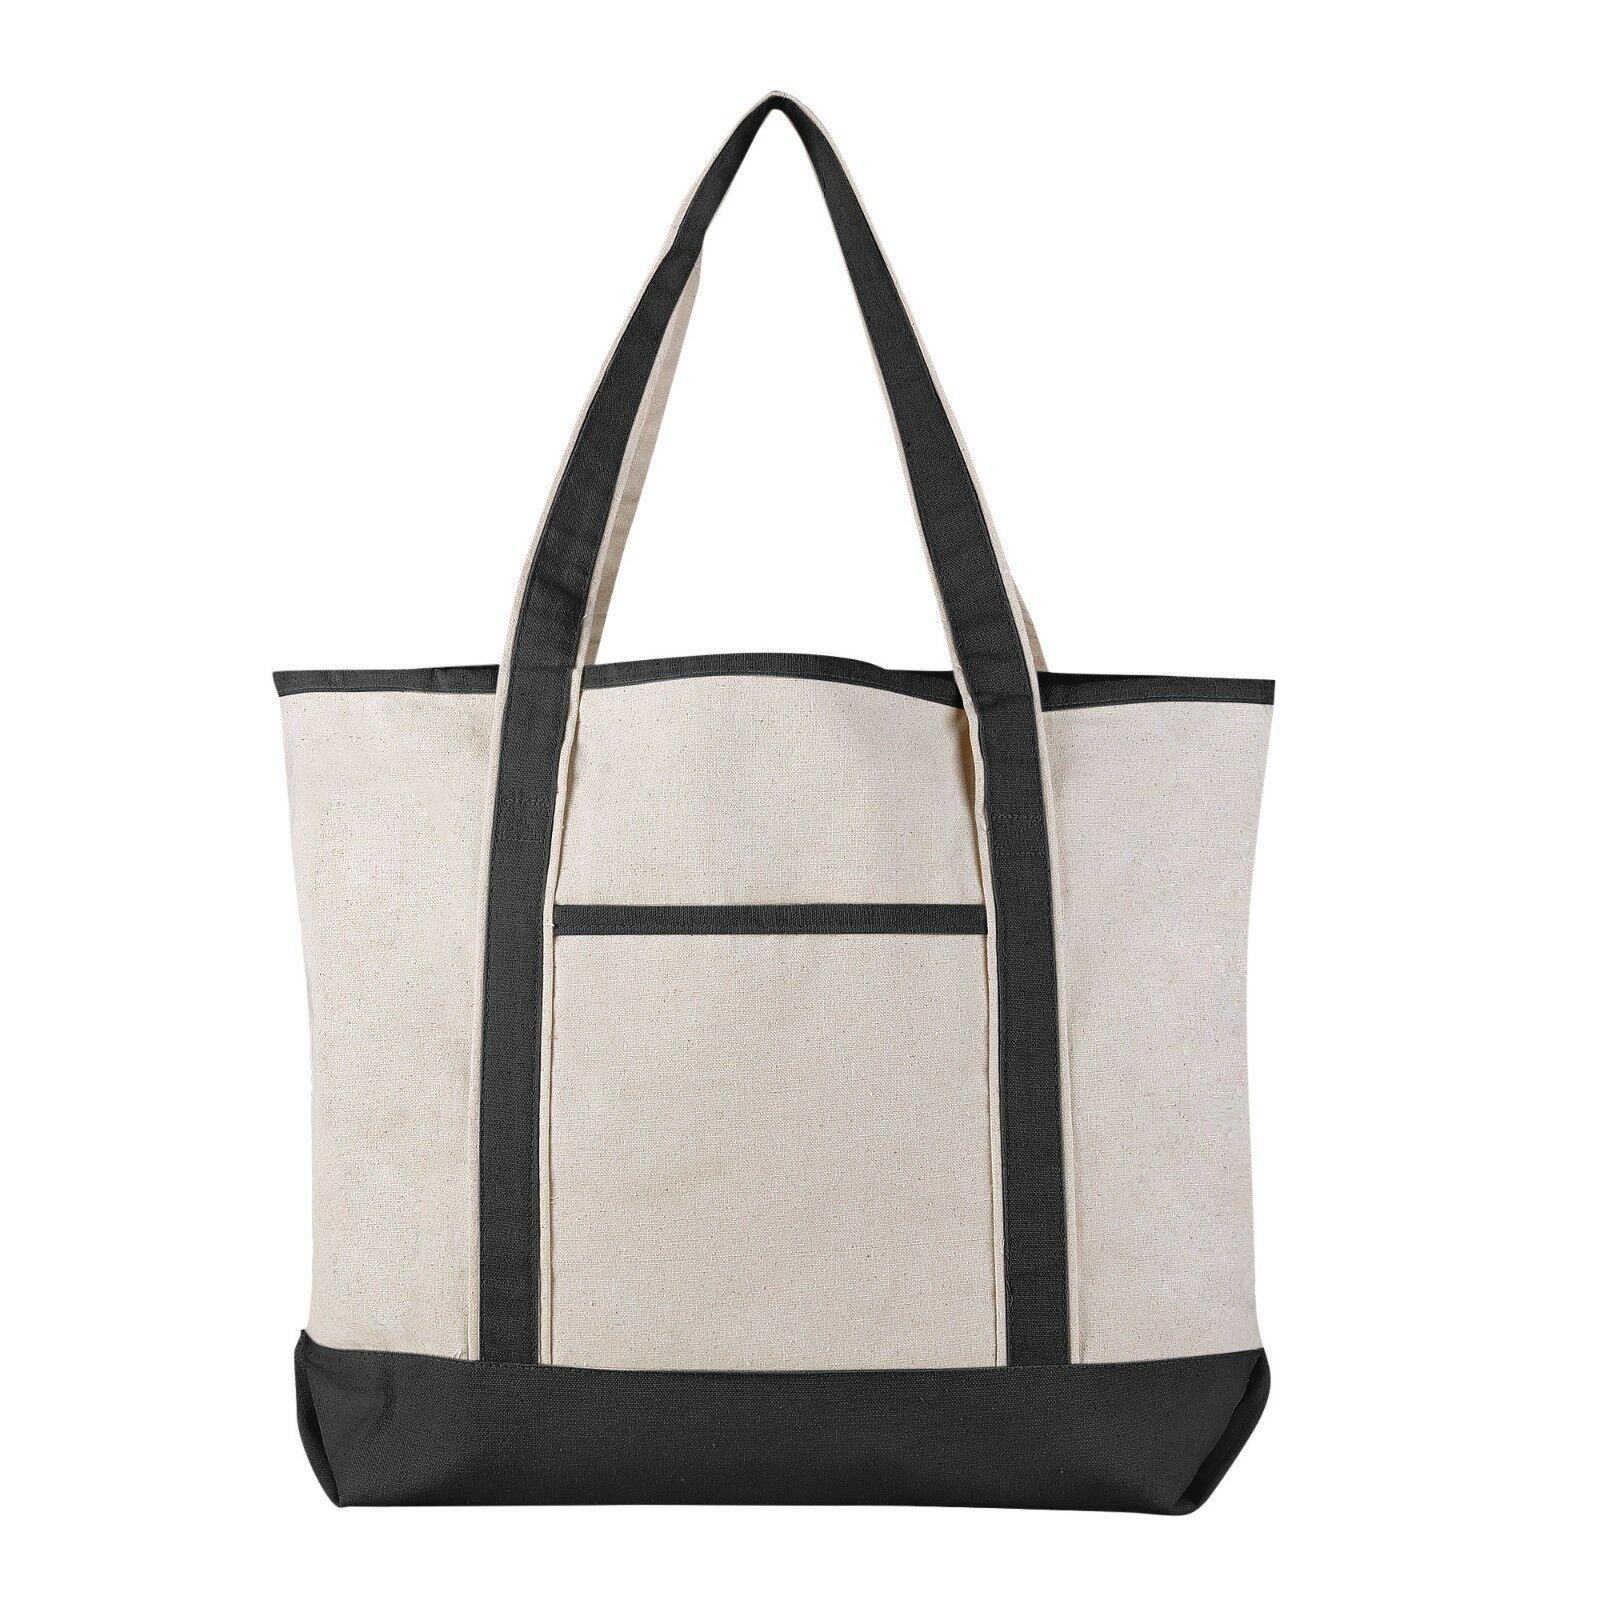 Extra Large Sturdy Canvas Tote Bag Canvas Bags for Crafts HTV Beach Work 1699